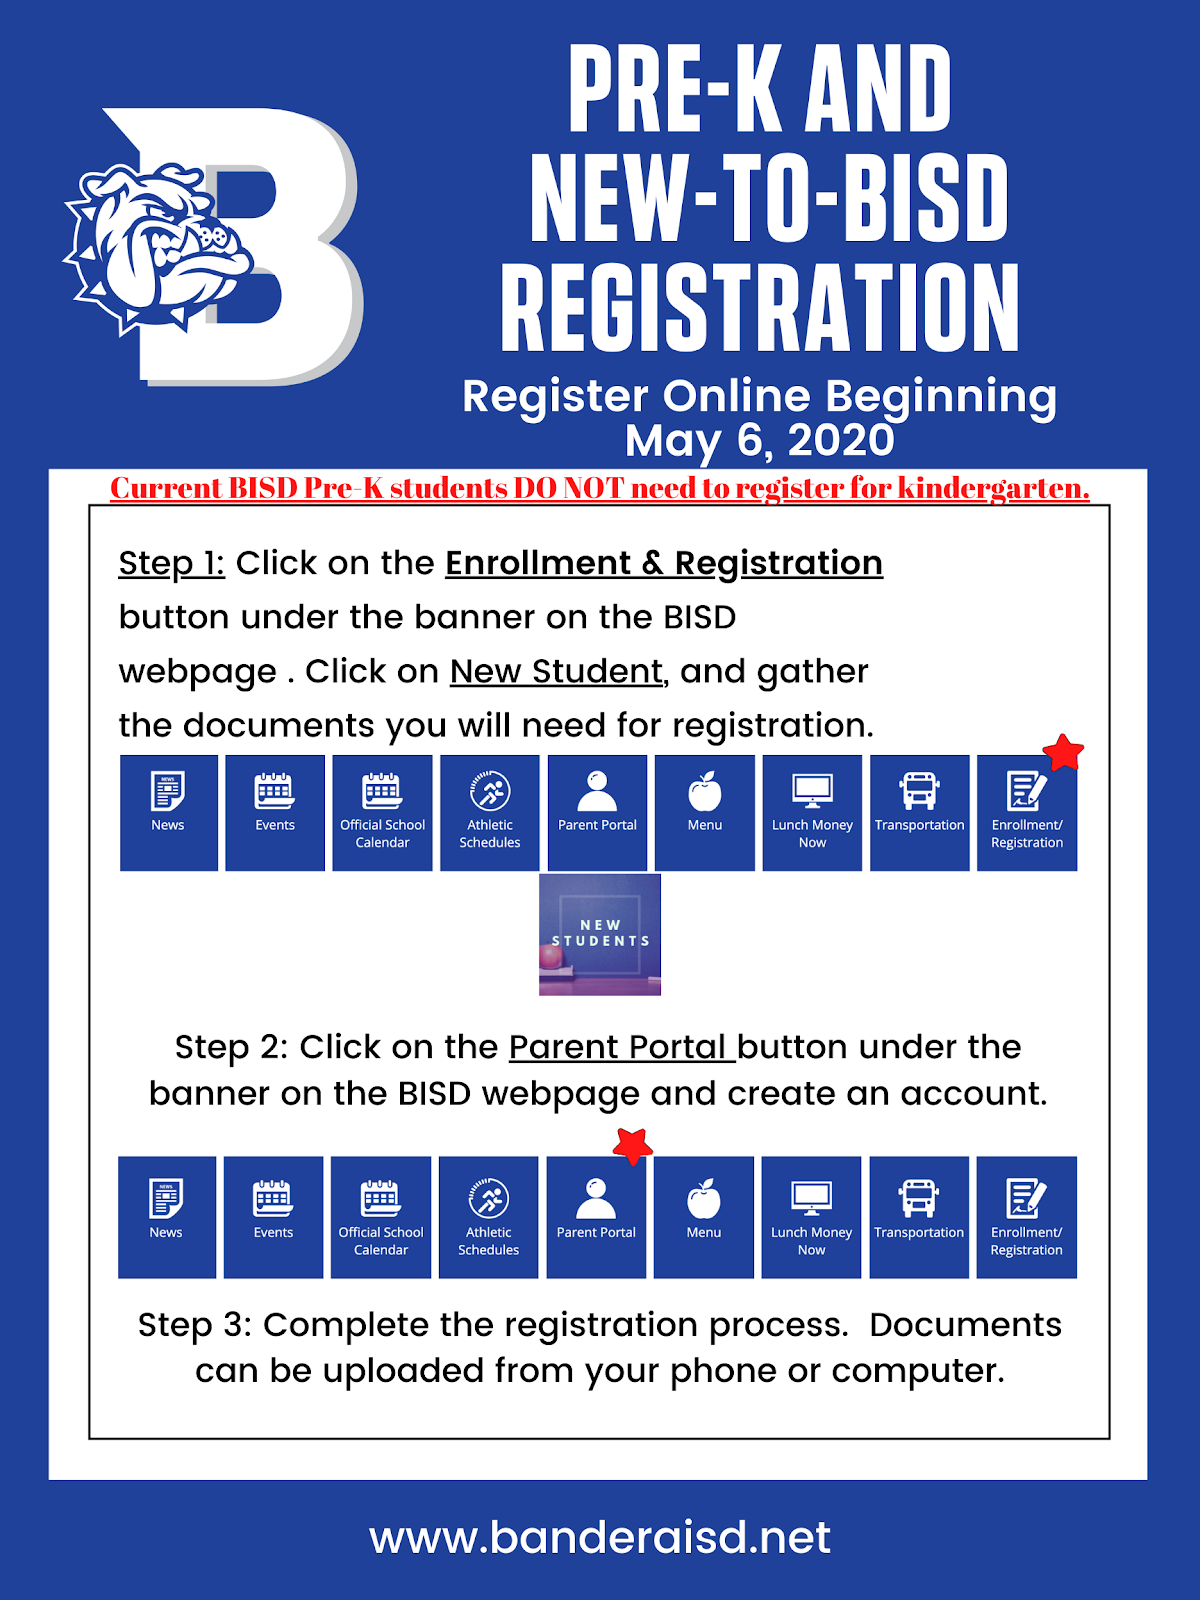 Directions for registering